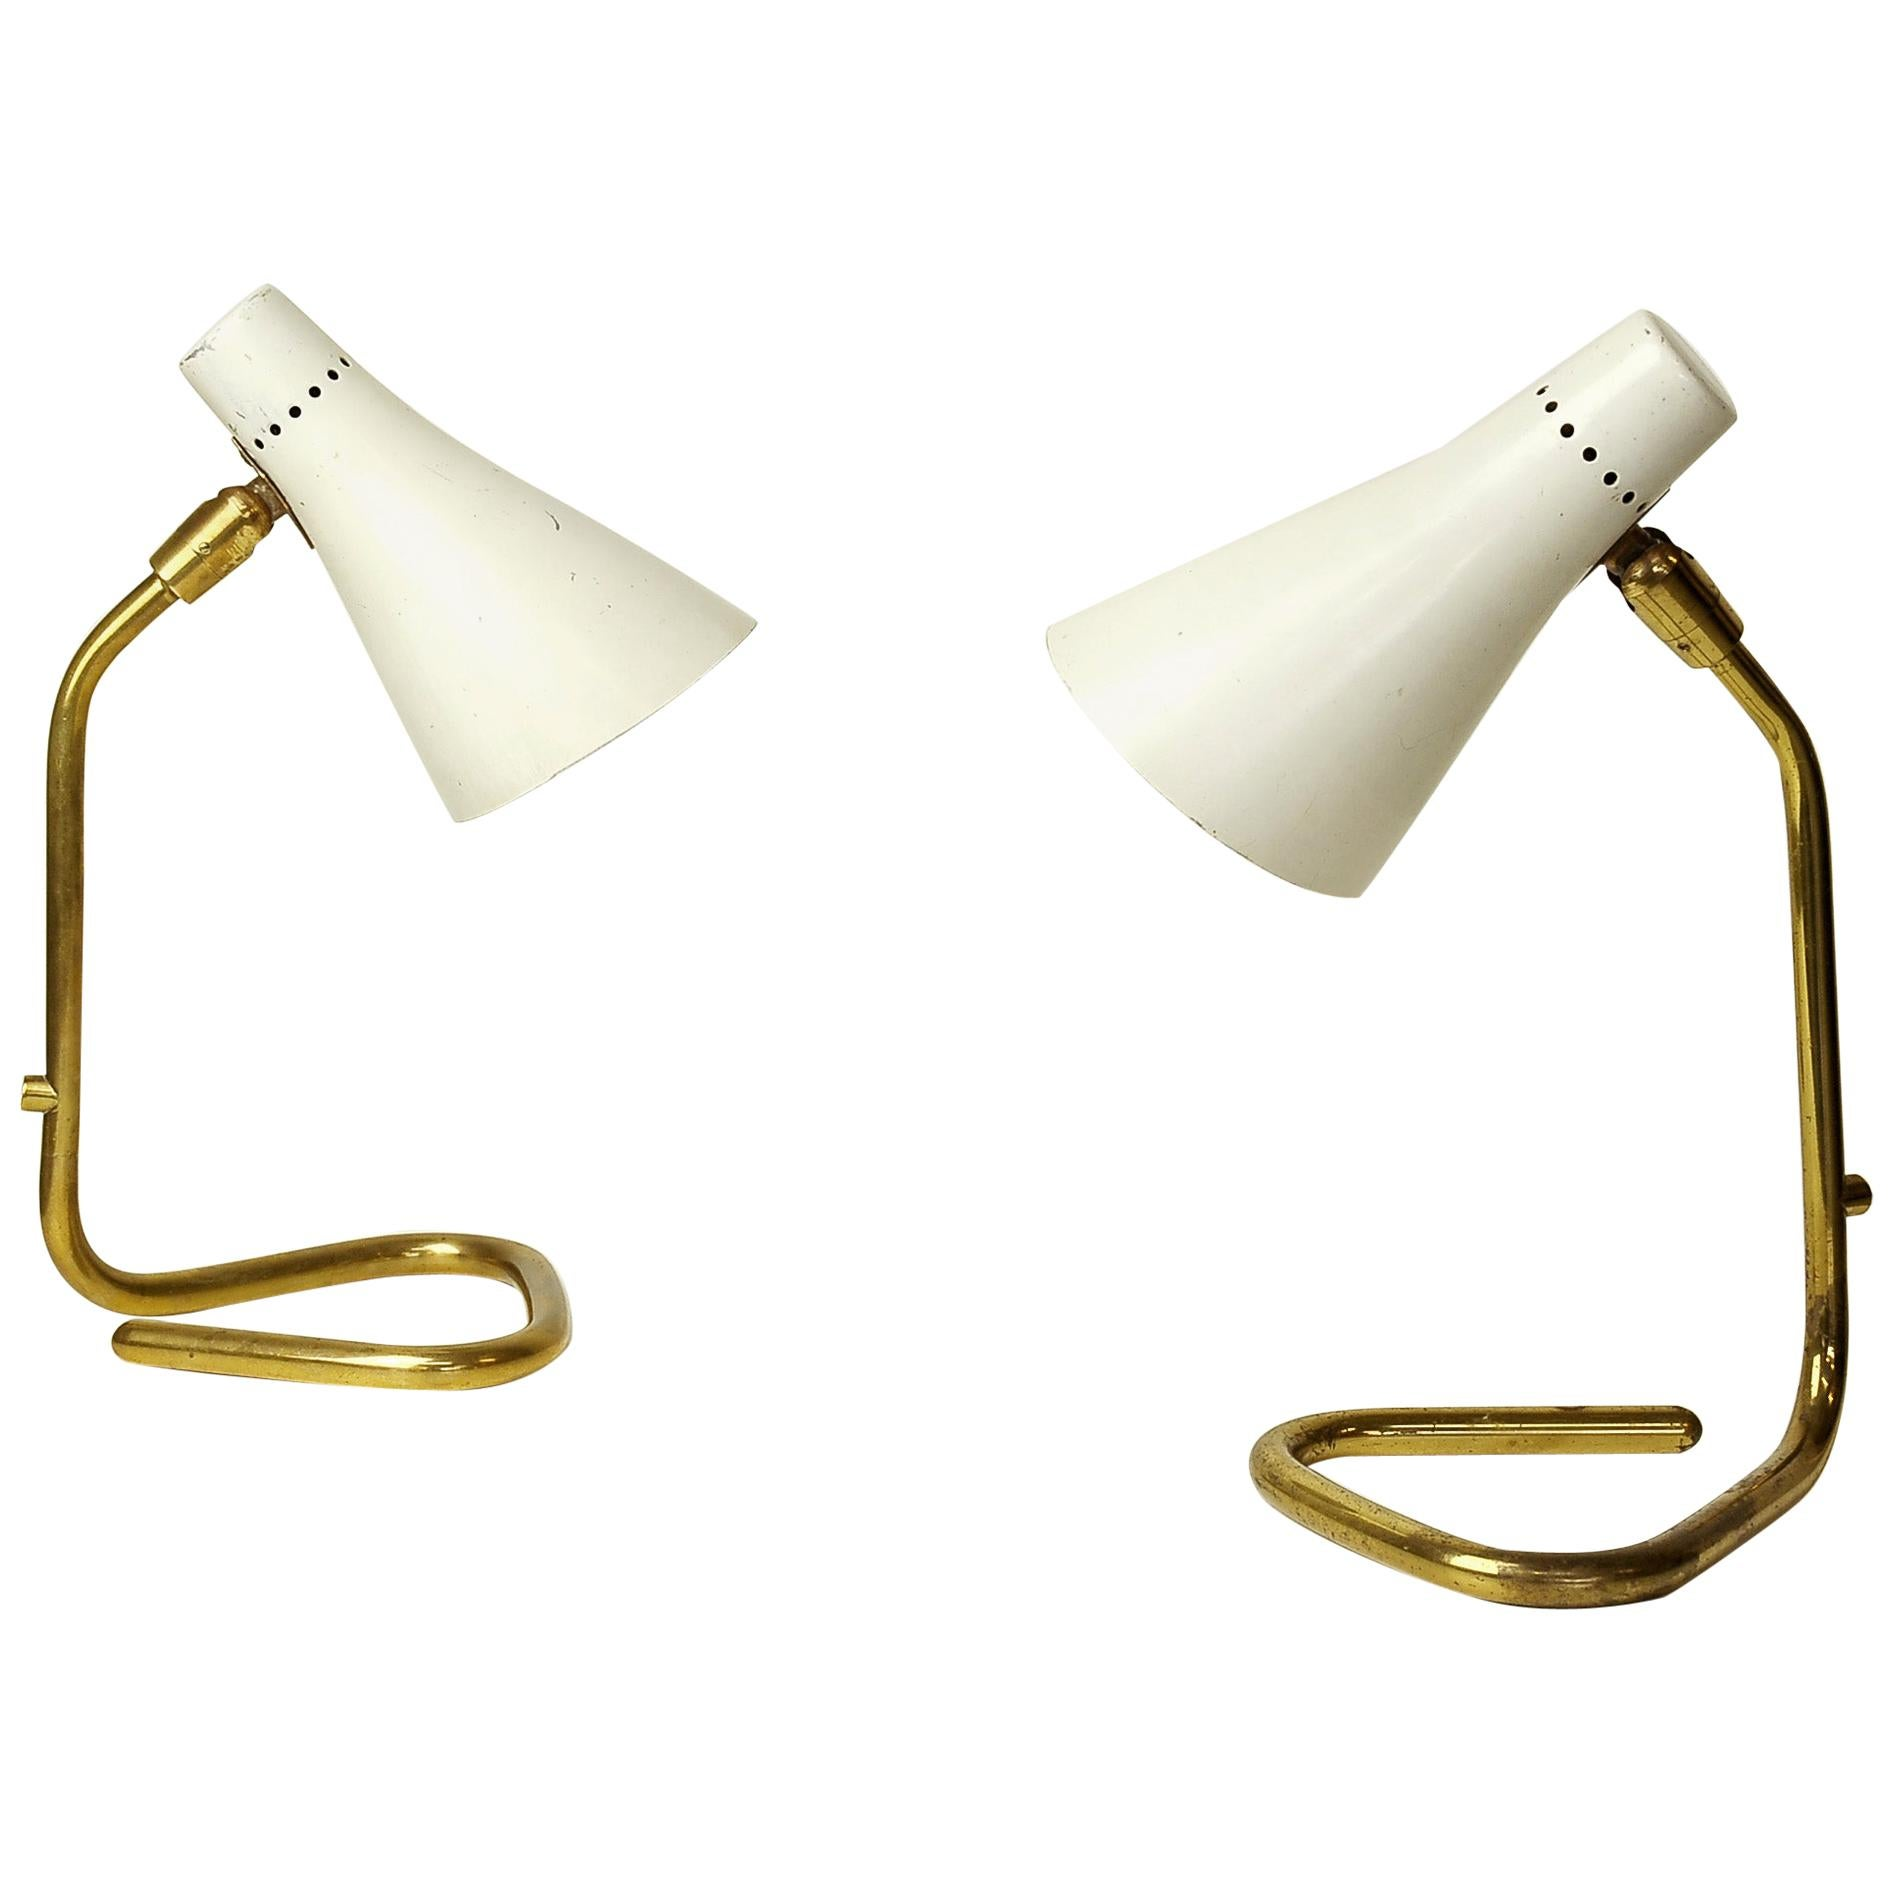 """Pair of Brass Table Lamps """"Vipere"""" by Giuseppe Ostuni for O-Luce, Italy, 1950s"""